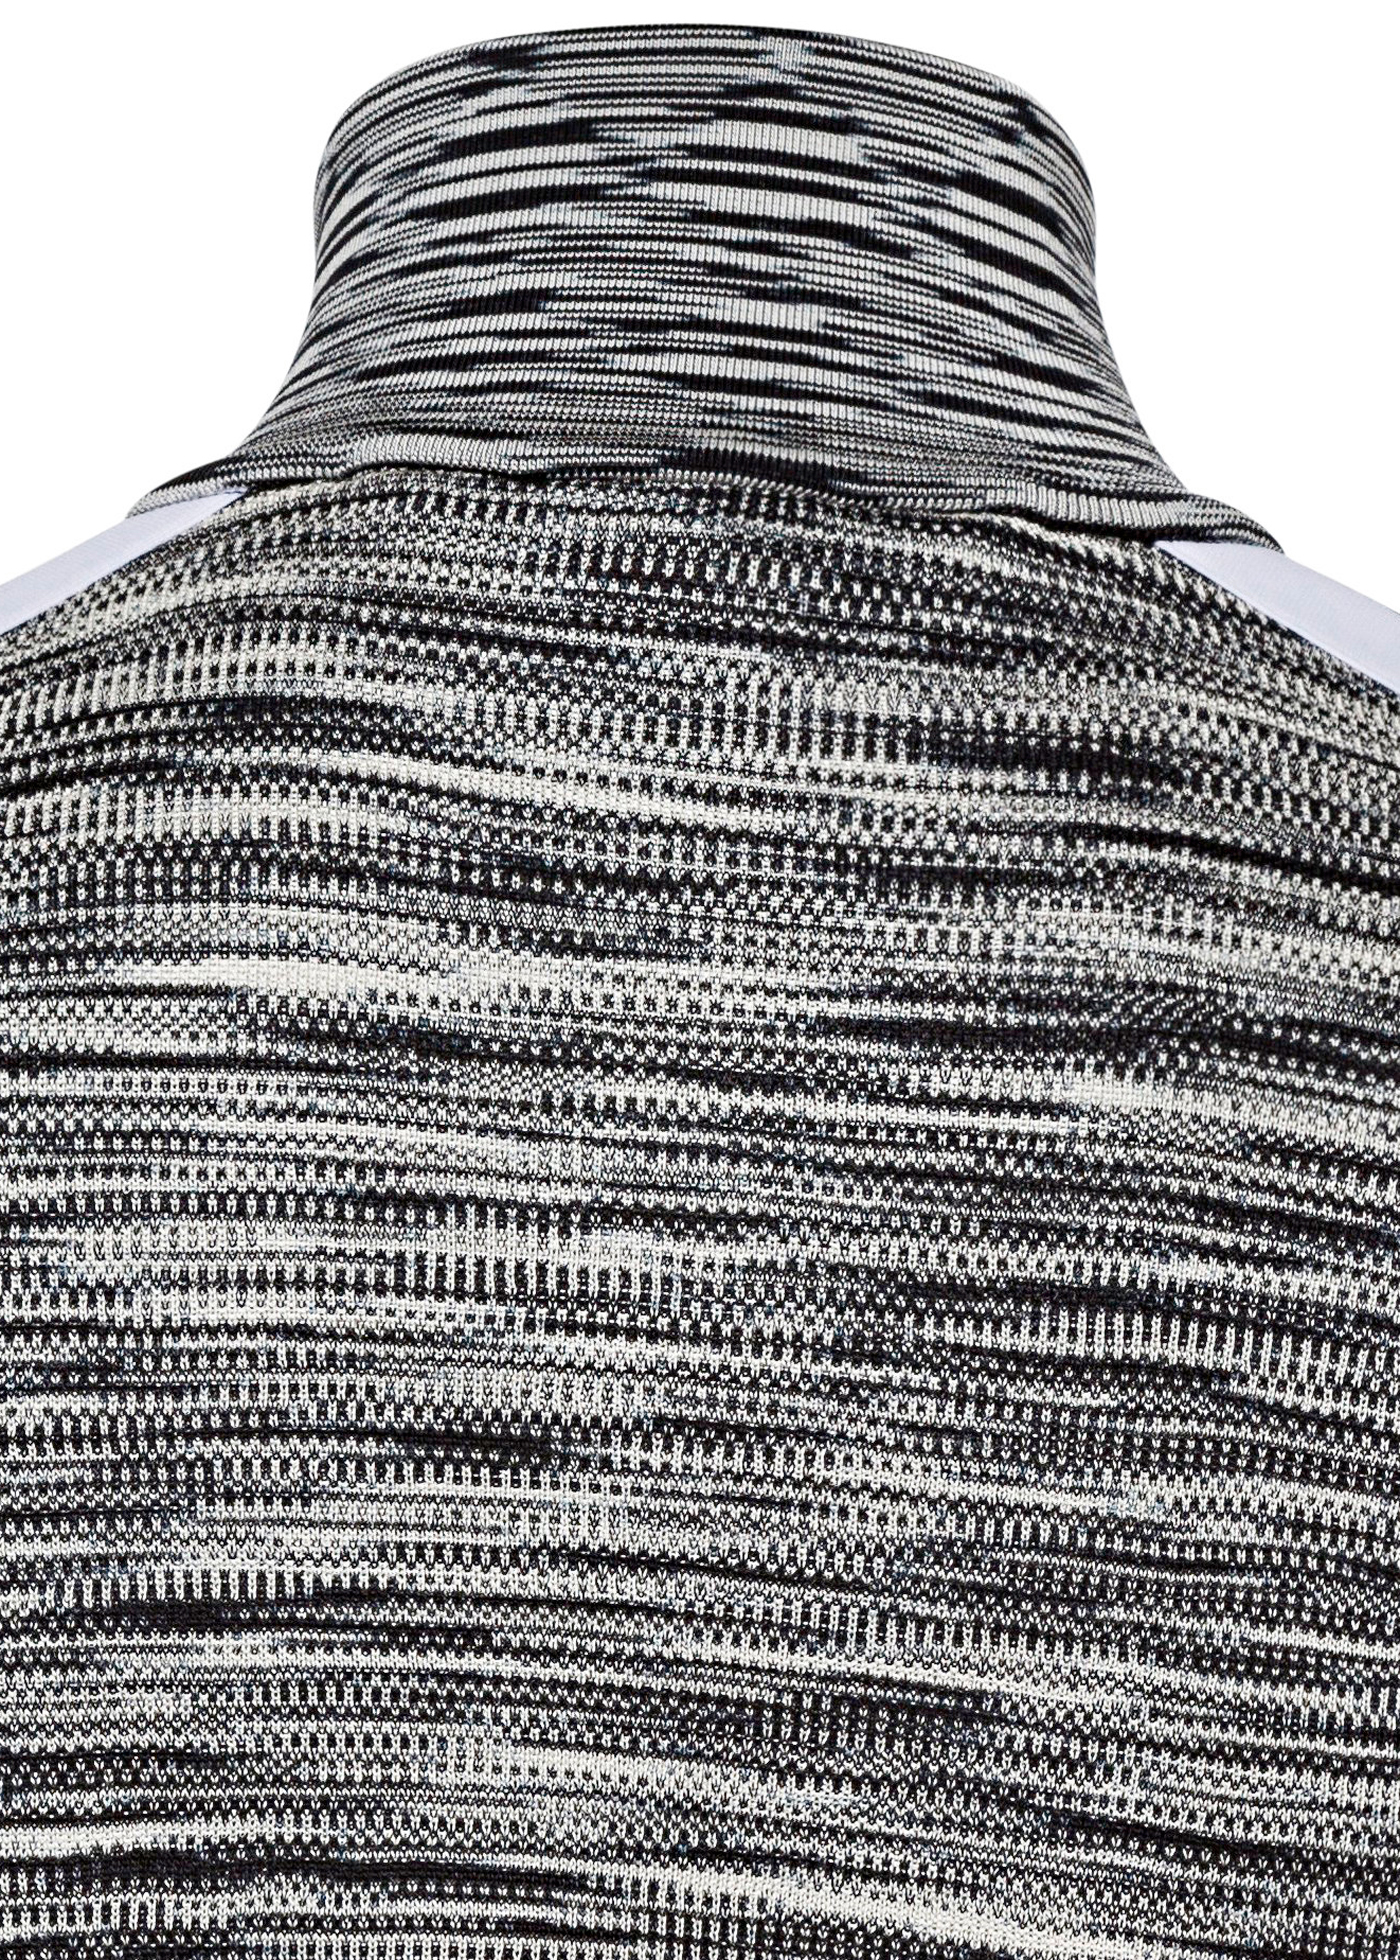 PA MISSONI KNITTED TRACK JKT image number 3